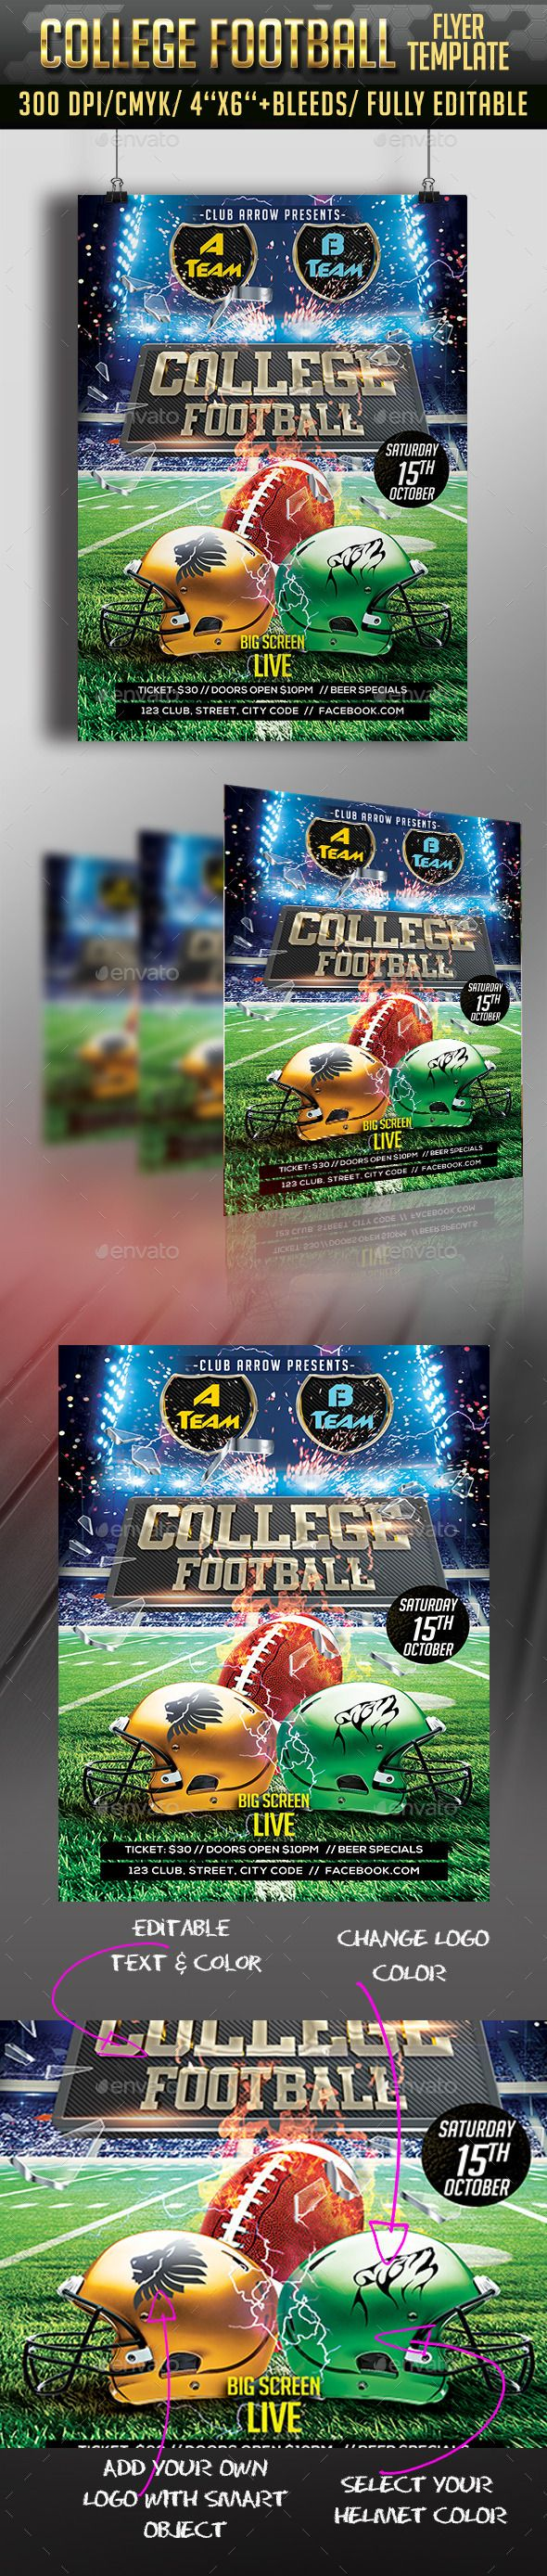 College Football Flyer   Flyer, New year's eve flyer ...